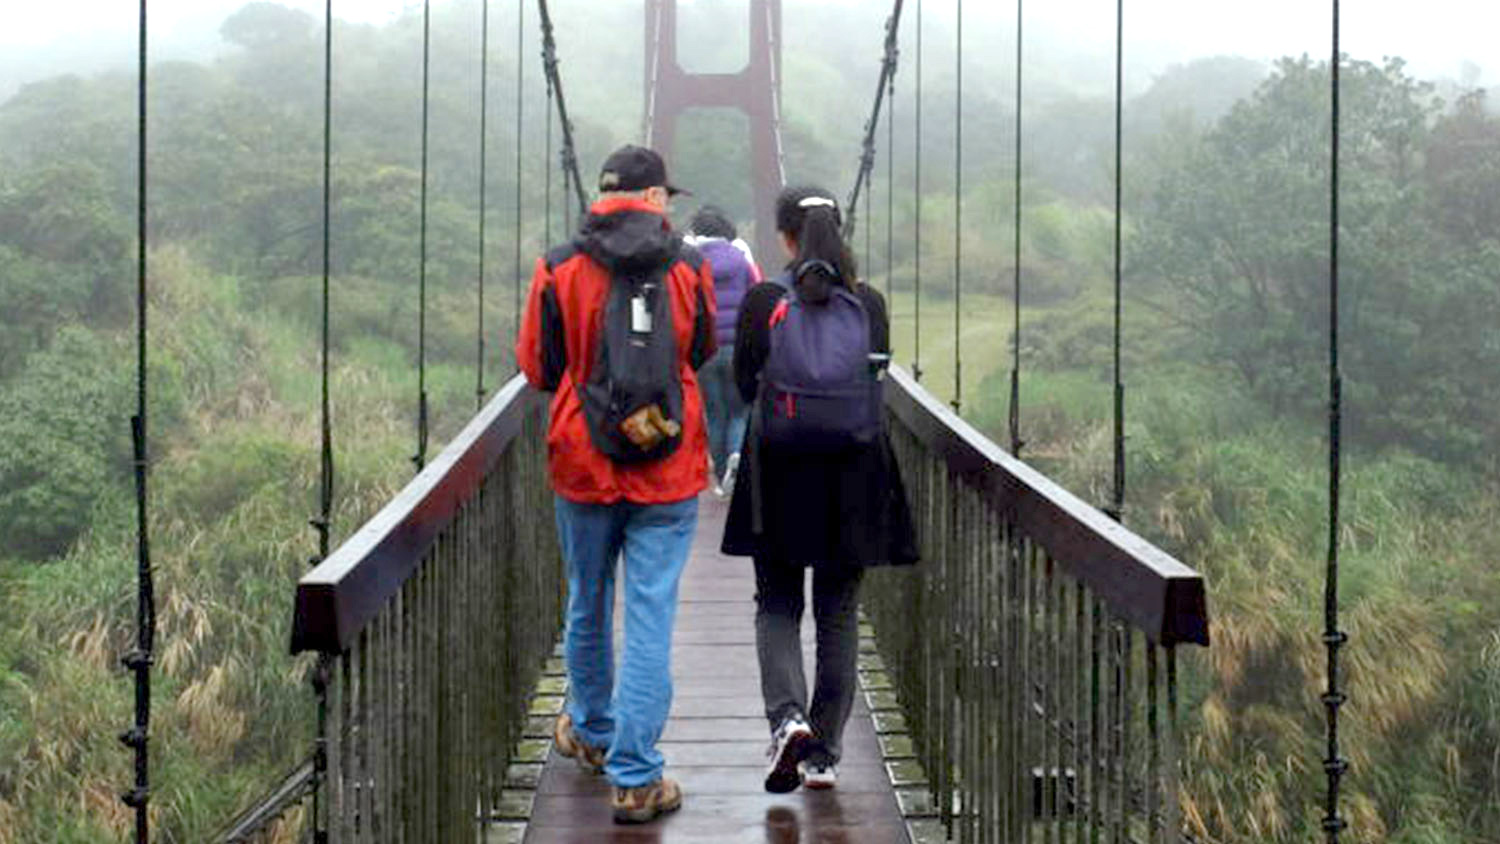 Hike on a Bridge - About - Parks Recreation and Tourism Management NC State